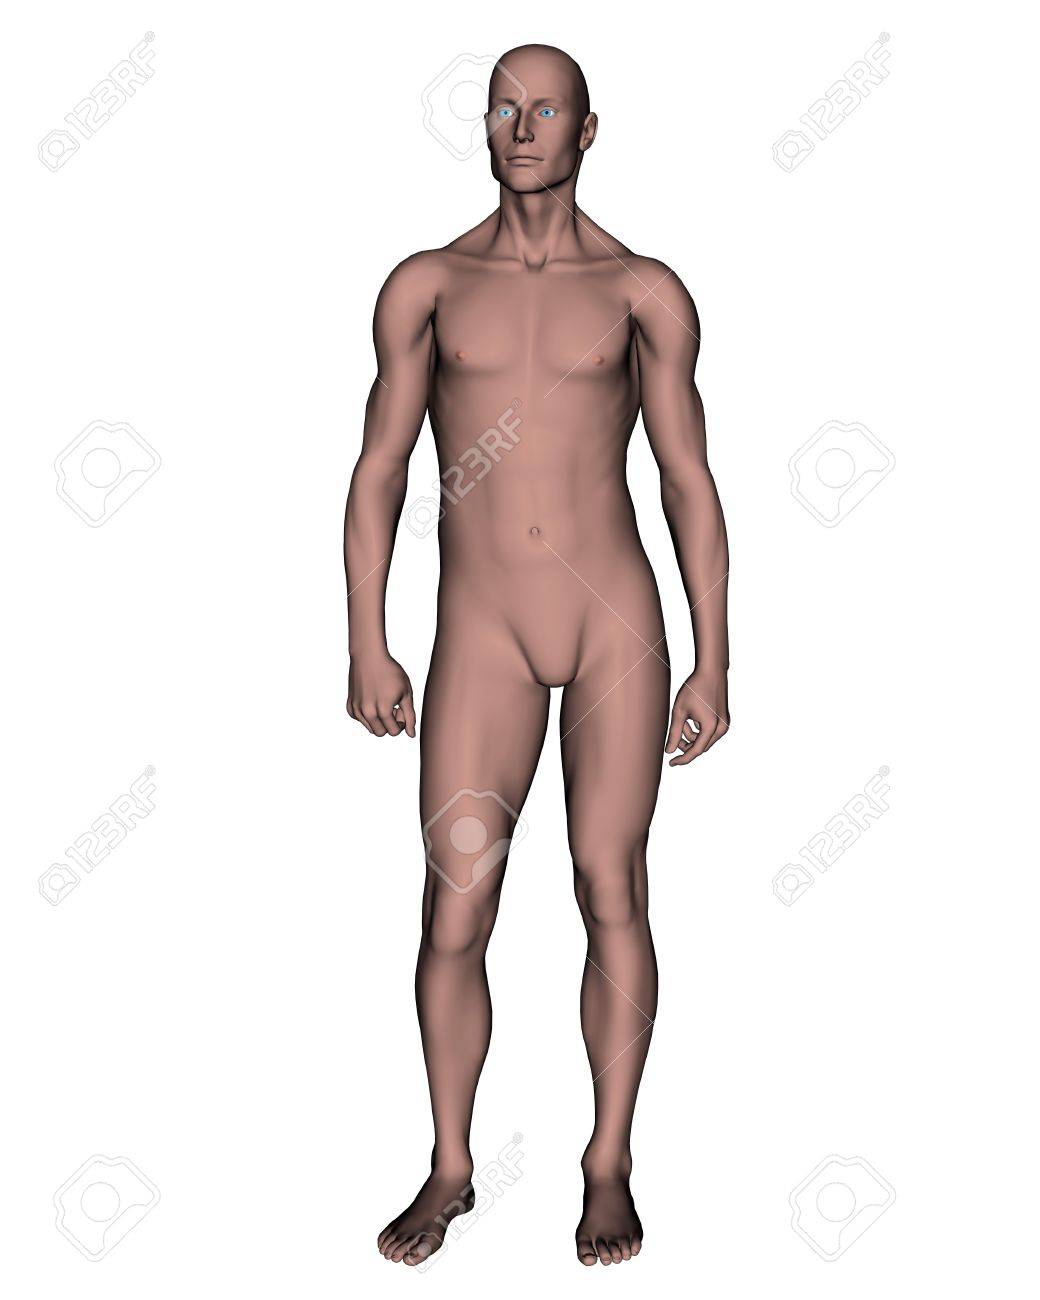 Standing naked male